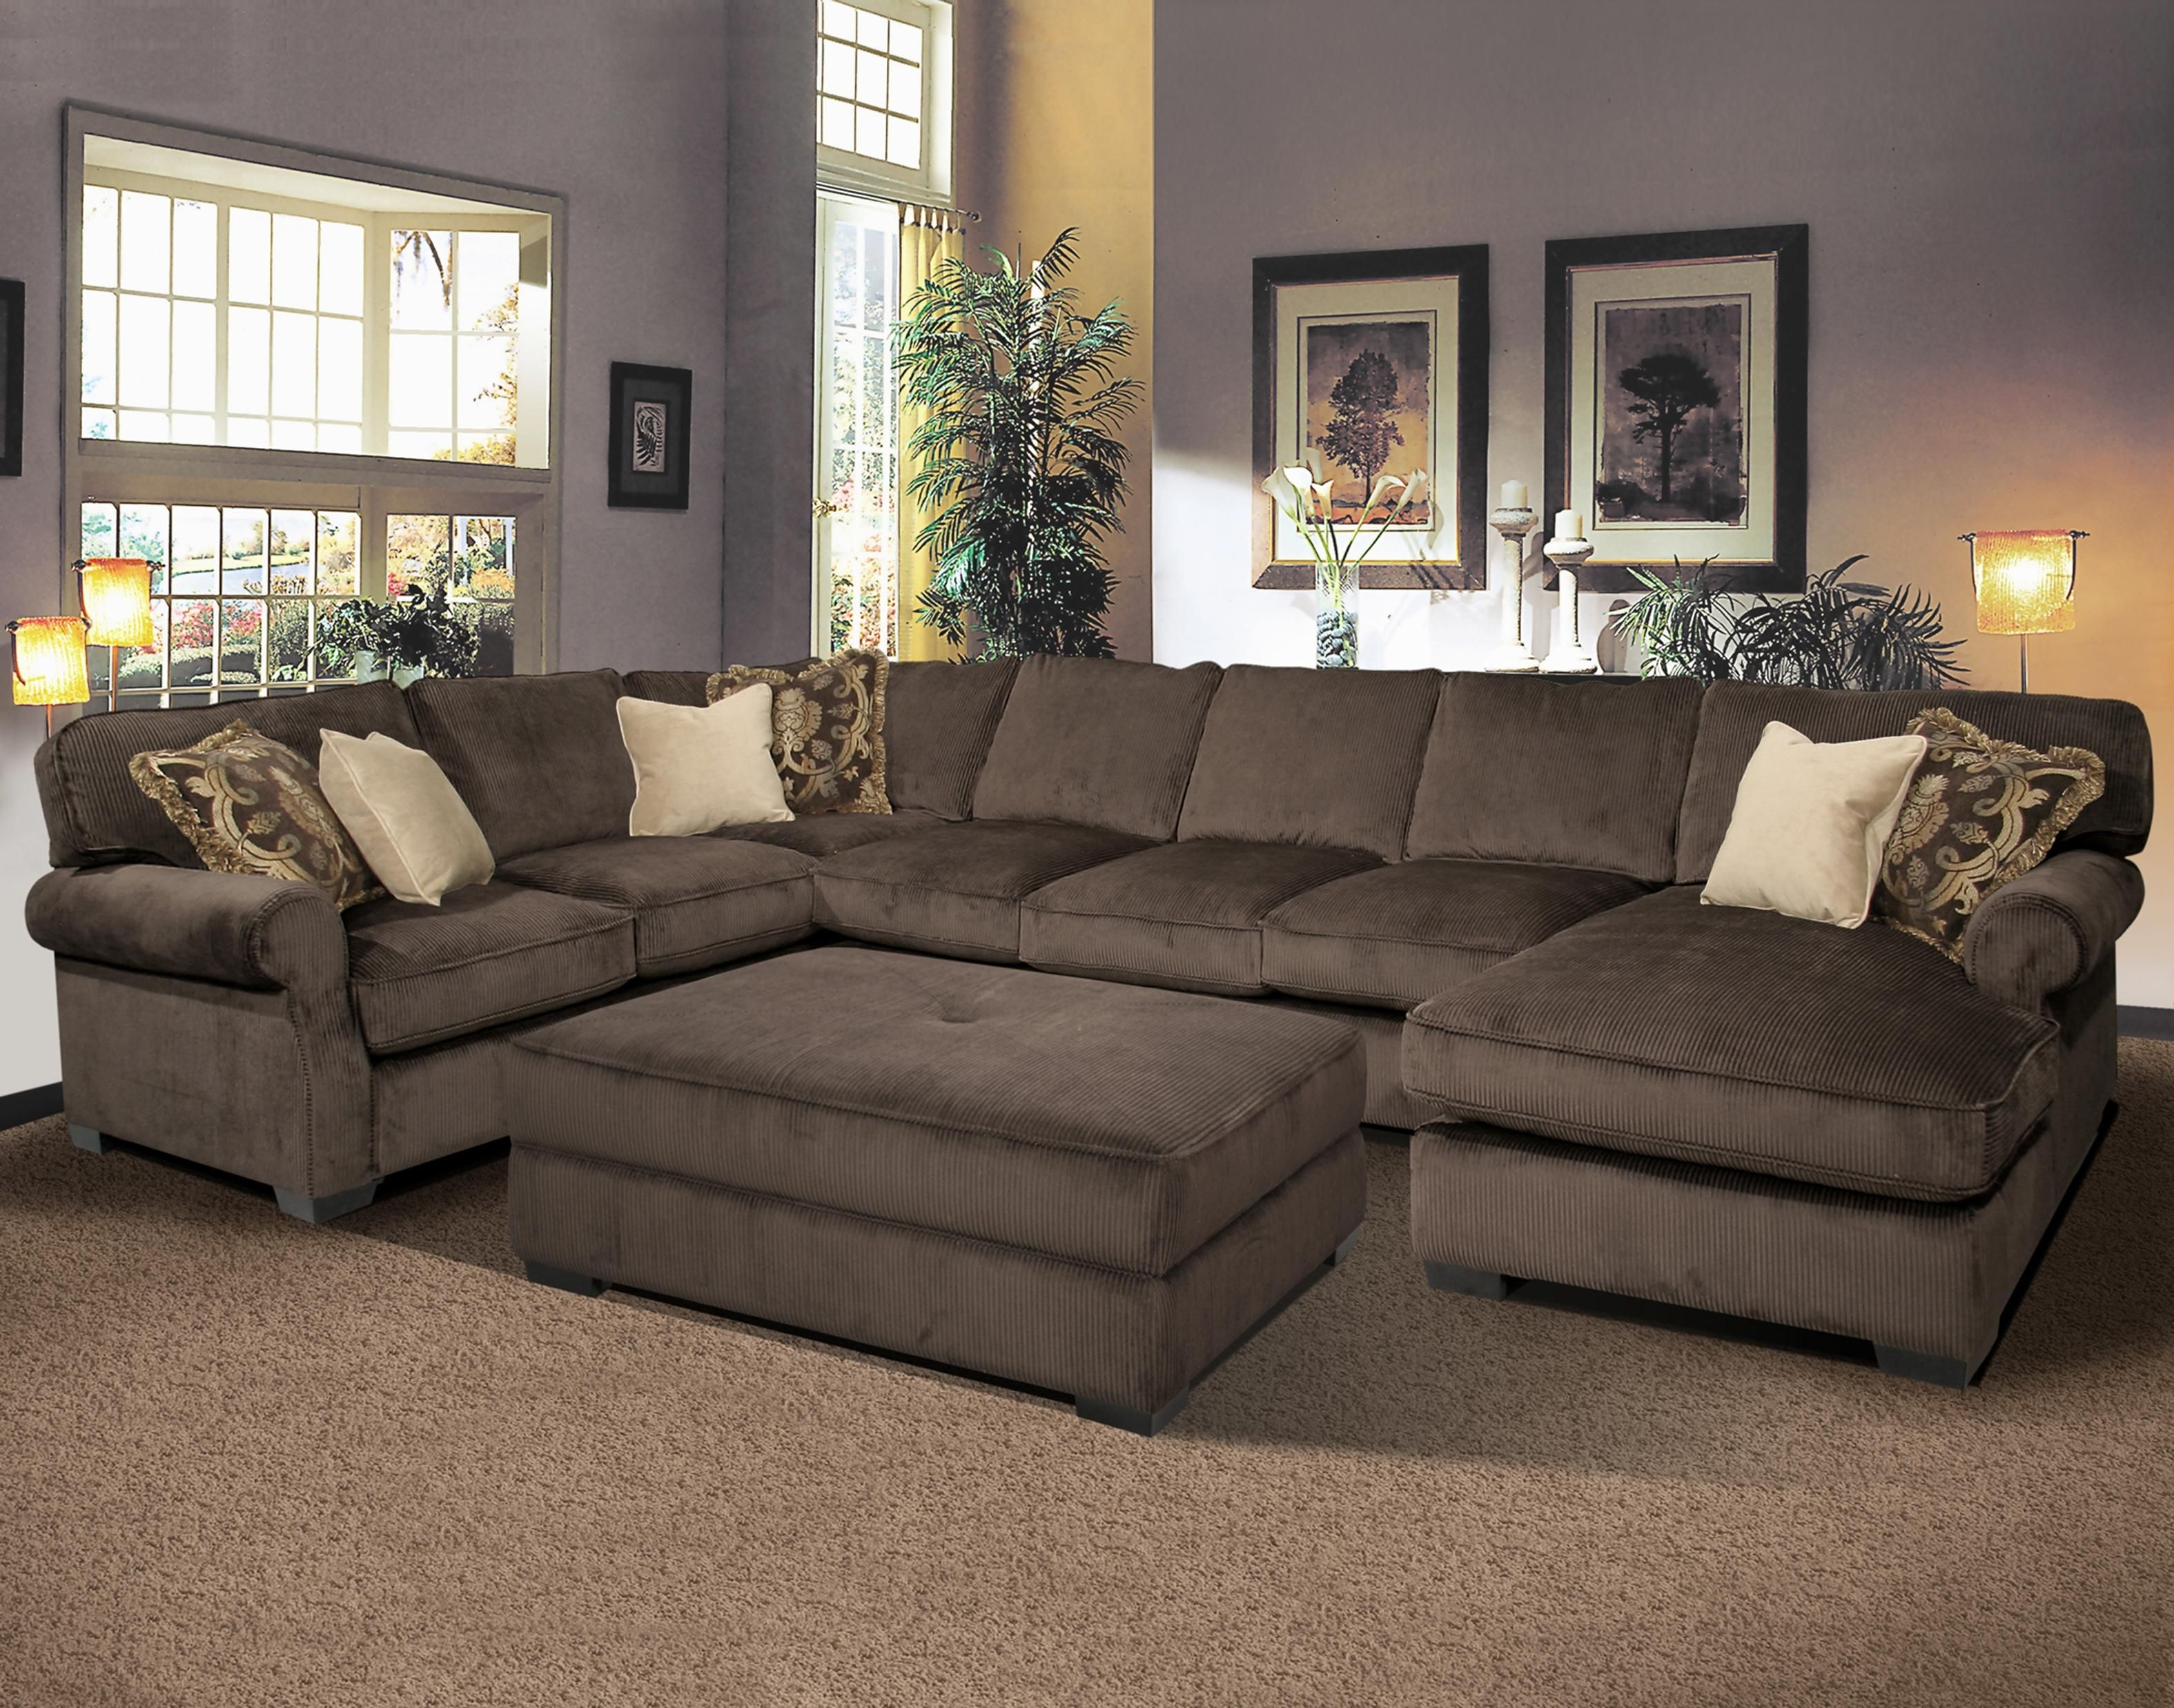 Big And Comfy Grand Island Large, 7 Seat Sectional Sofa With Right In Home Furniture Sectional Sofas (Image 2 of 10)